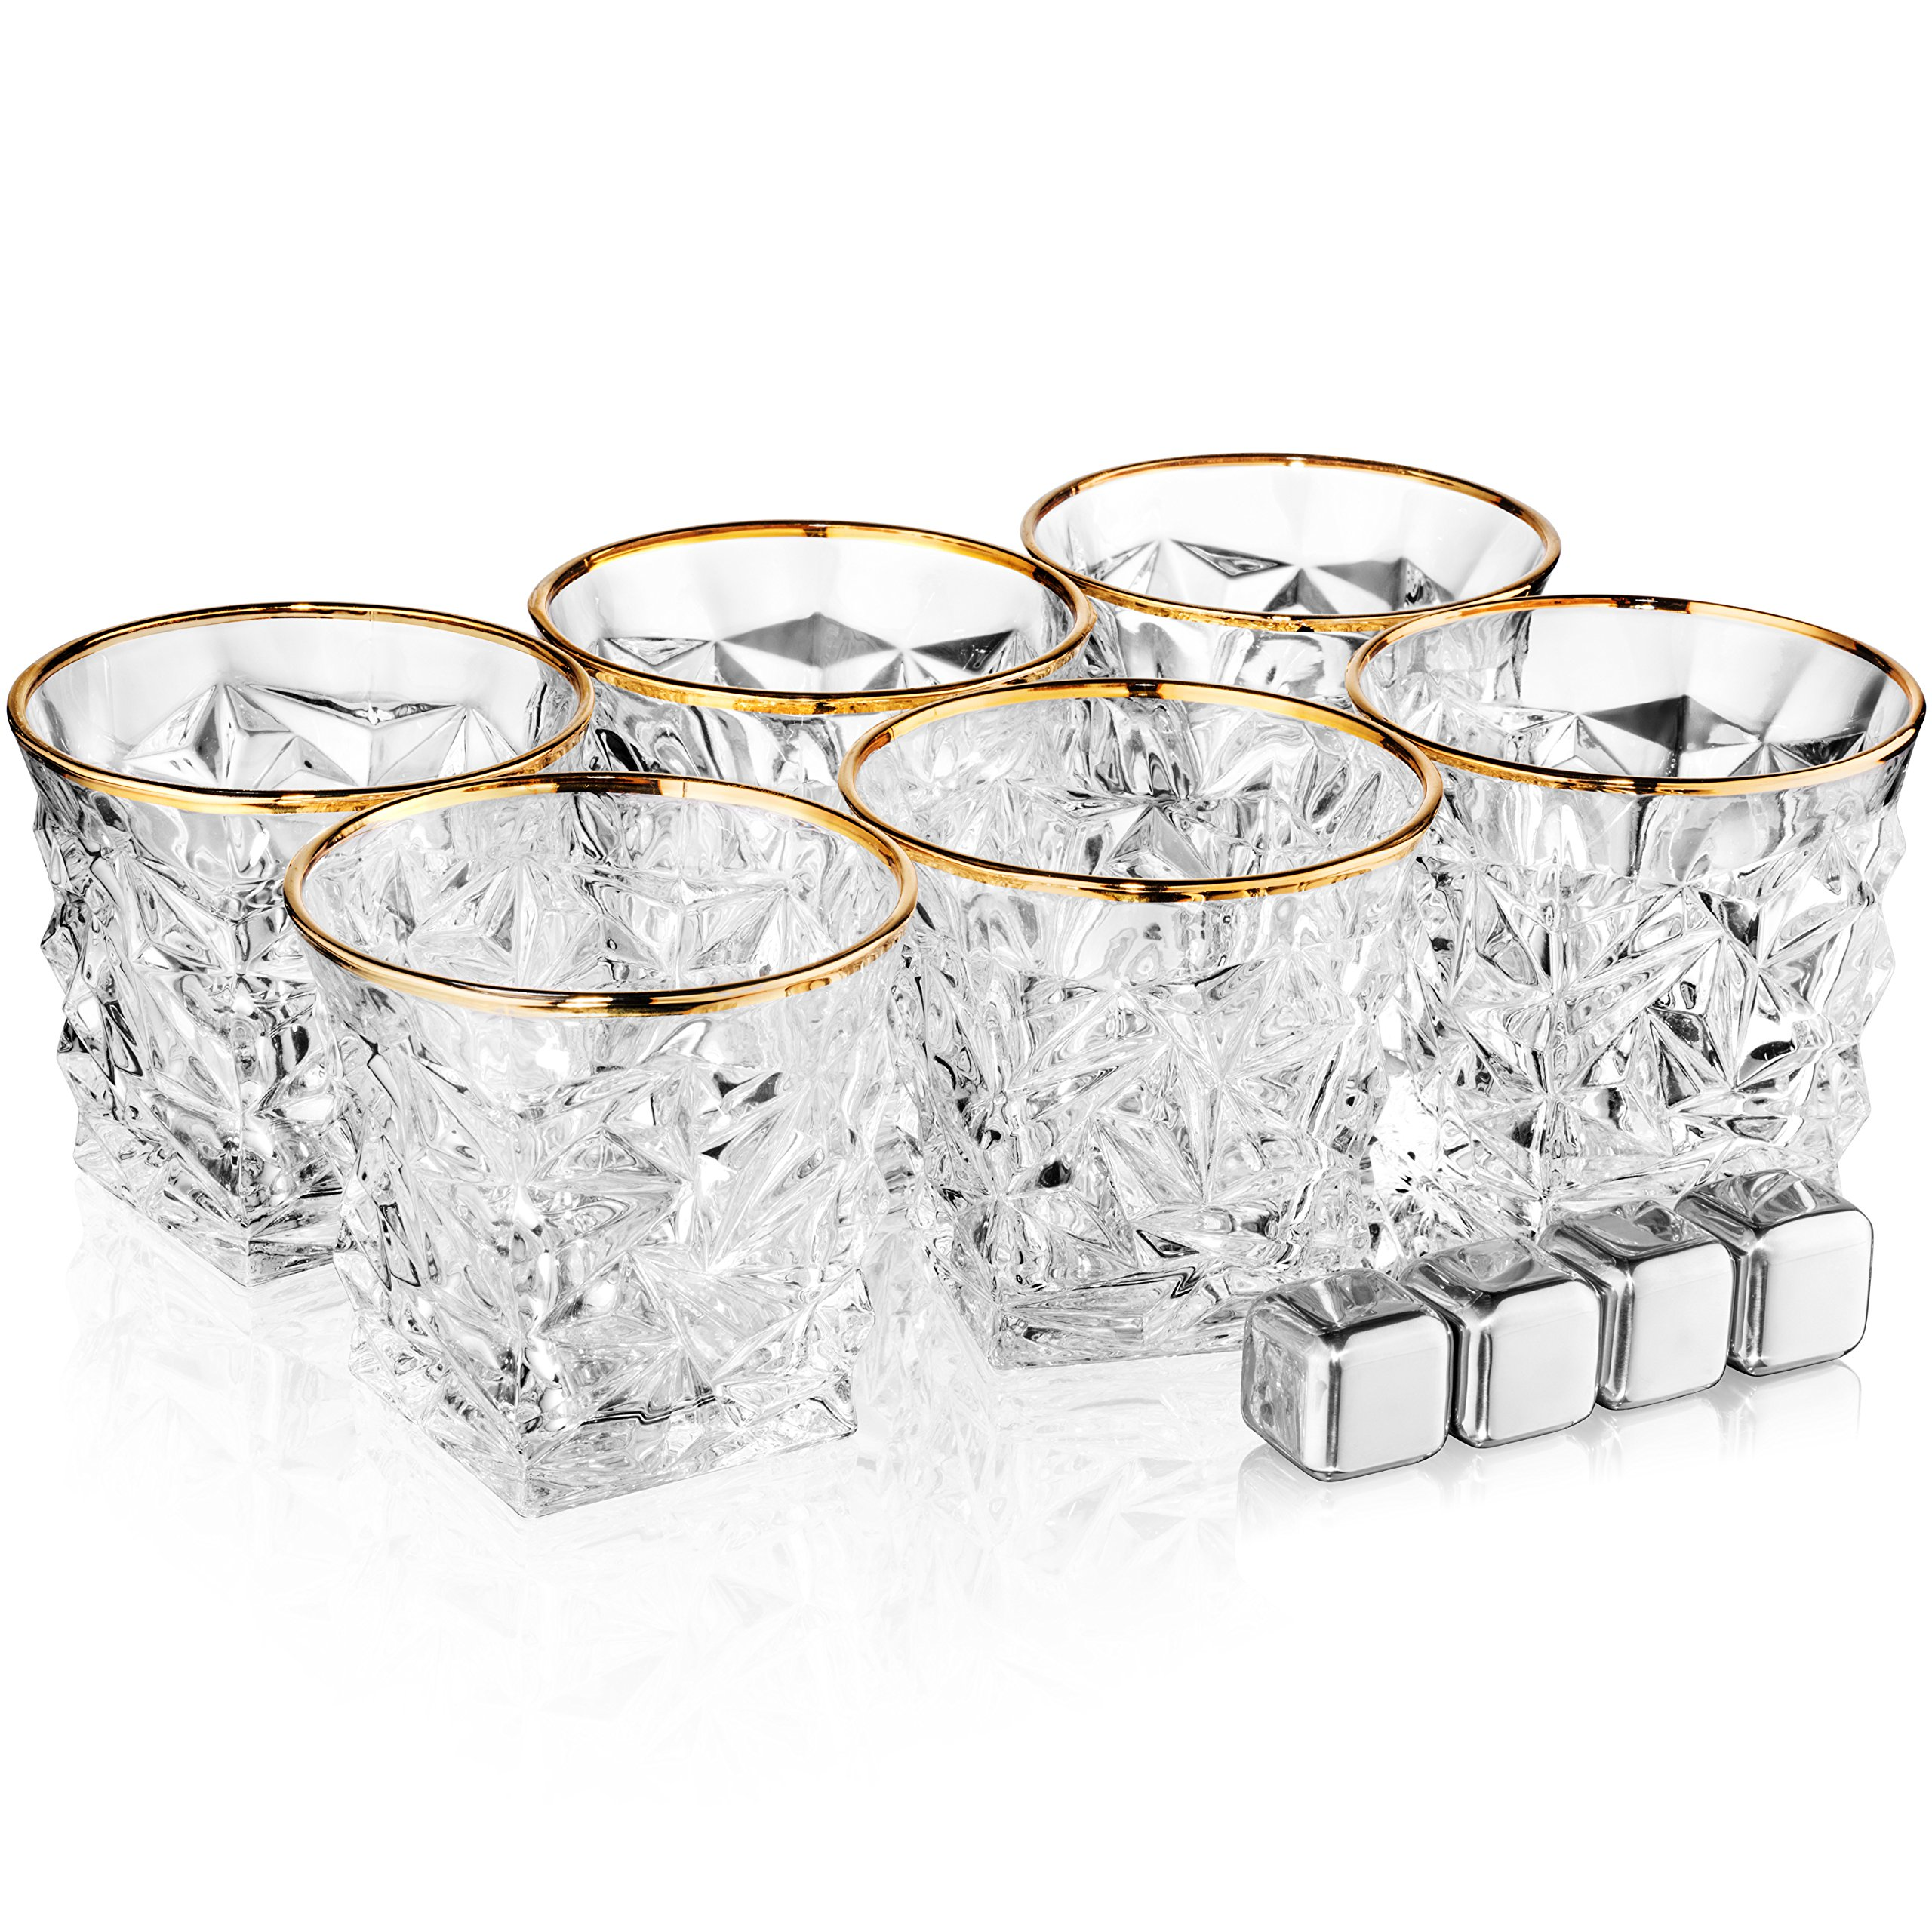 Posh Five Whiskey Glasses Set of 6 Diamond Scotch Glasses + 4 Stainless Steel Whiskey Stones by Posh Five Trading Co (Image #4)